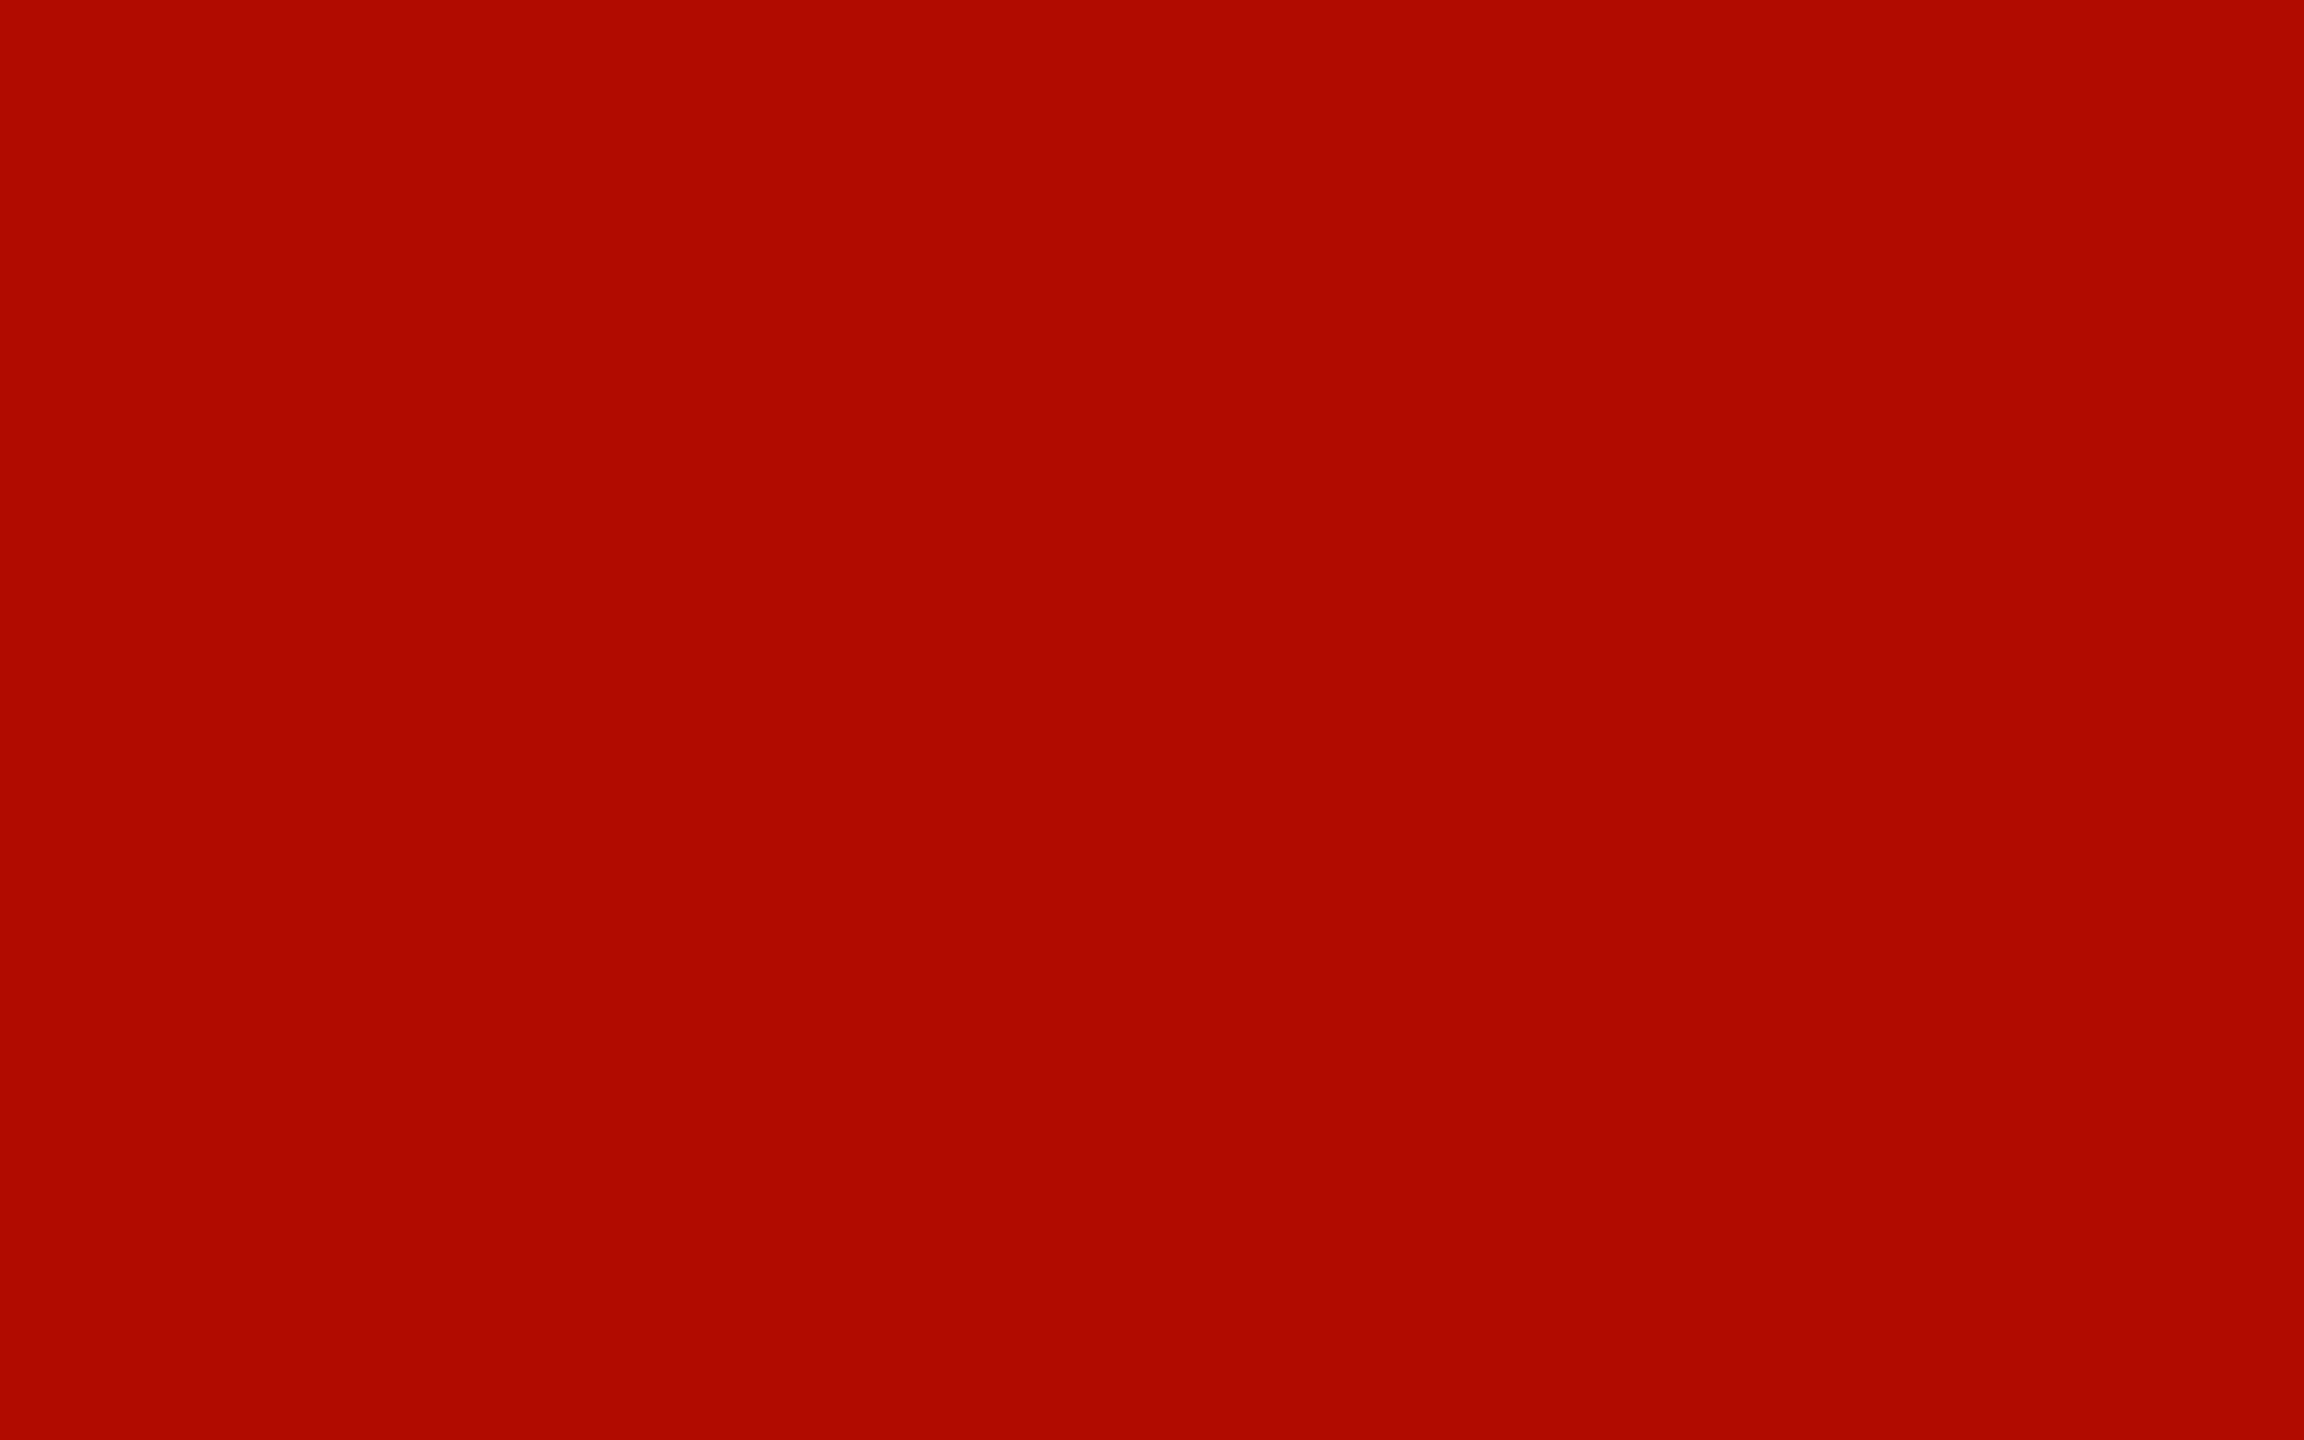 2304x1440 Mordant Red 19 Solid Color Background